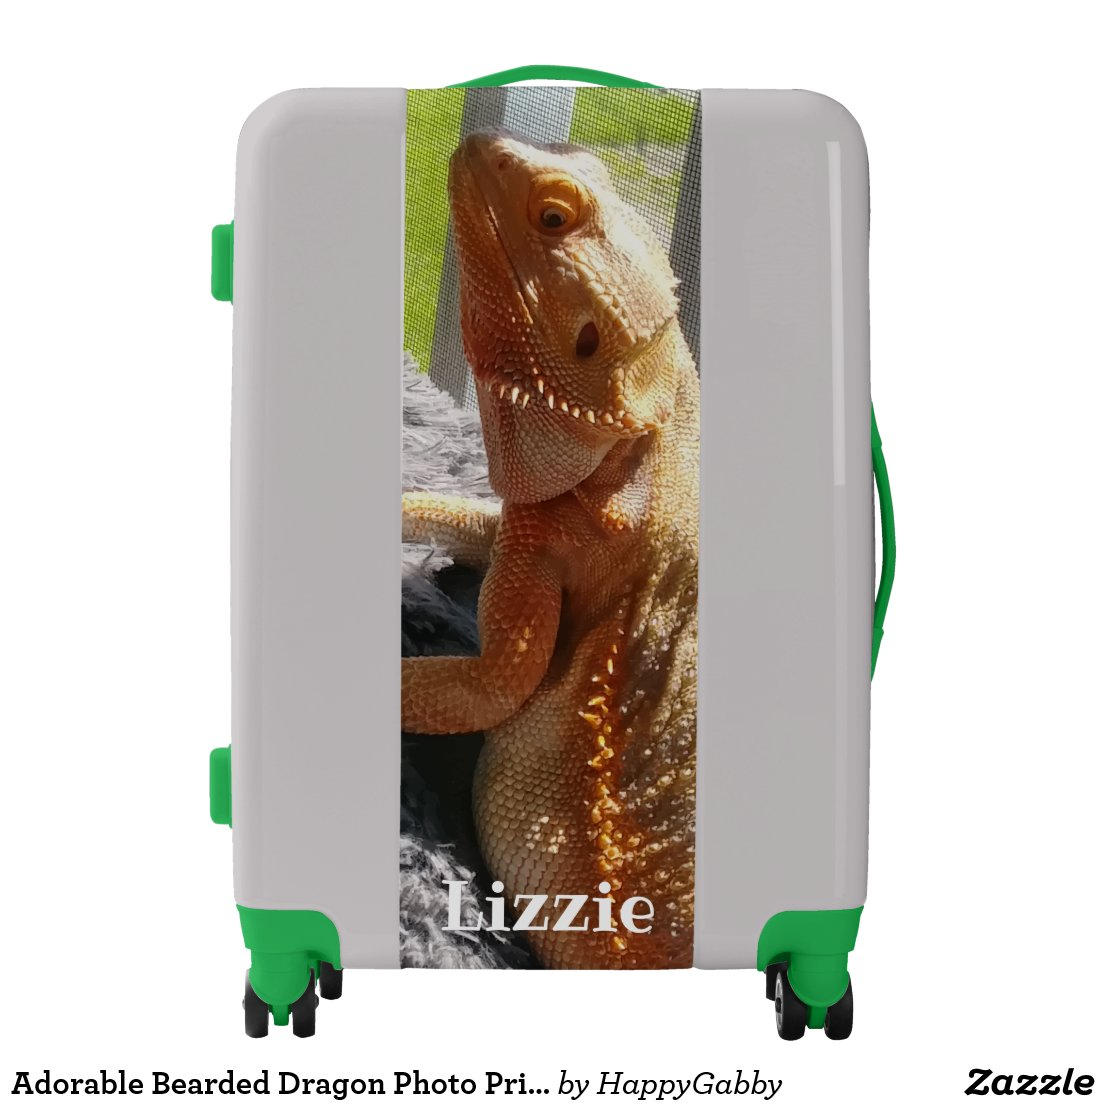 Adorable Bearded Dragon Photo Print Personalized Luggage